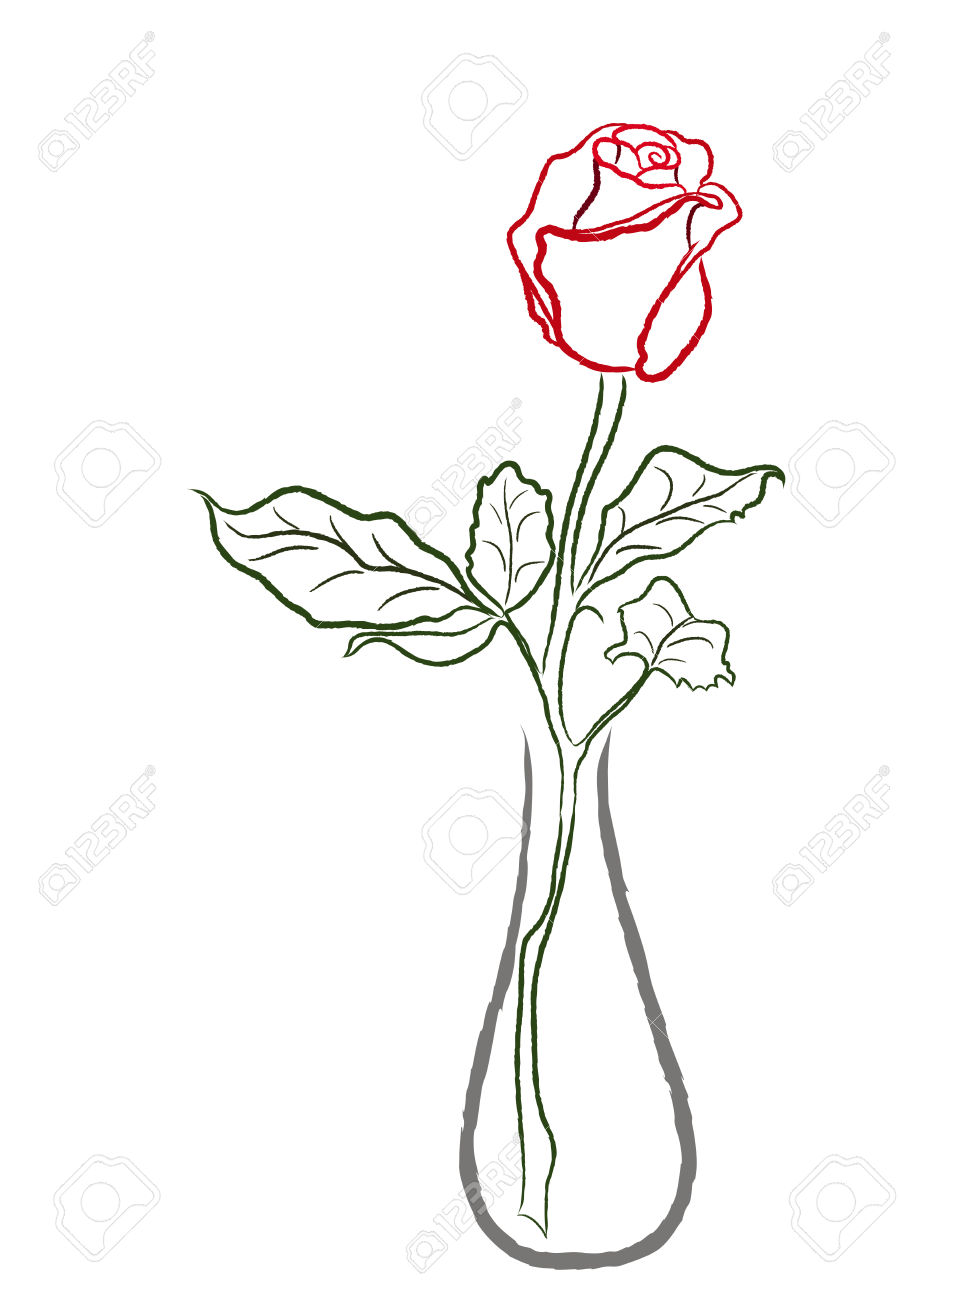 975x1300 Stylized Red Rose In A Vase Isolated On White Background, Hand